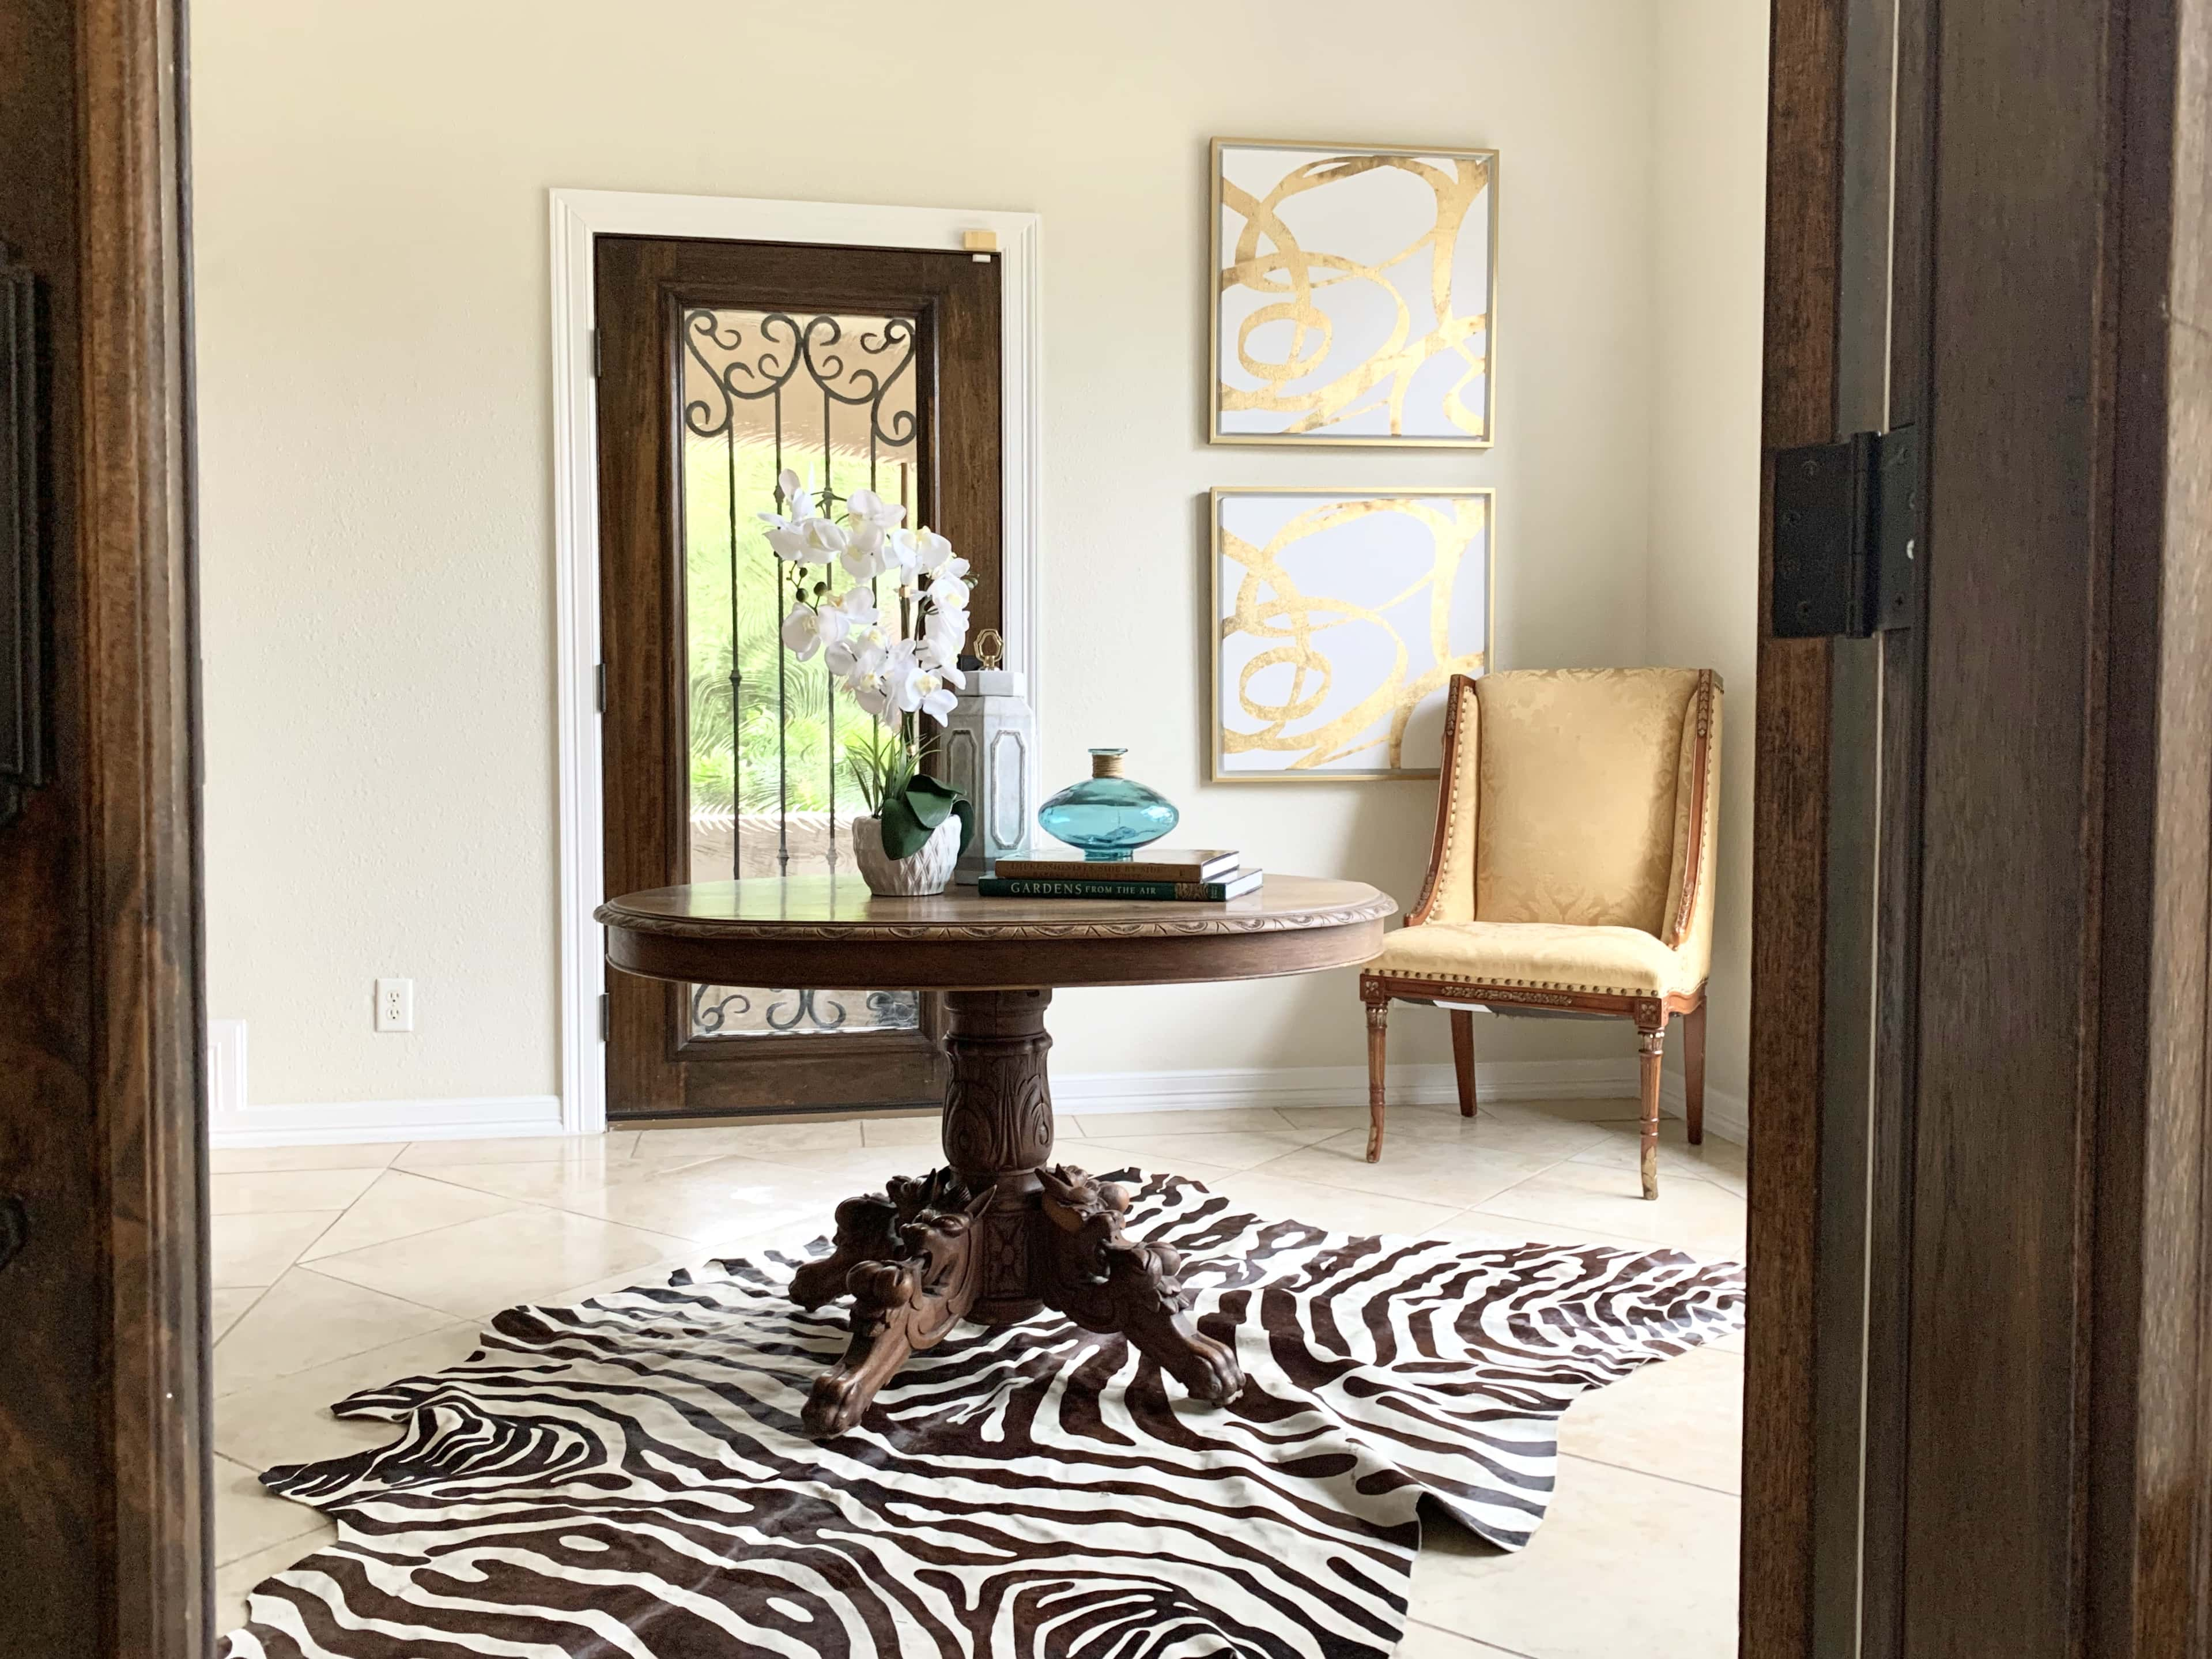 Full home staging in Las Vegas, Nevada, featuring an entryway